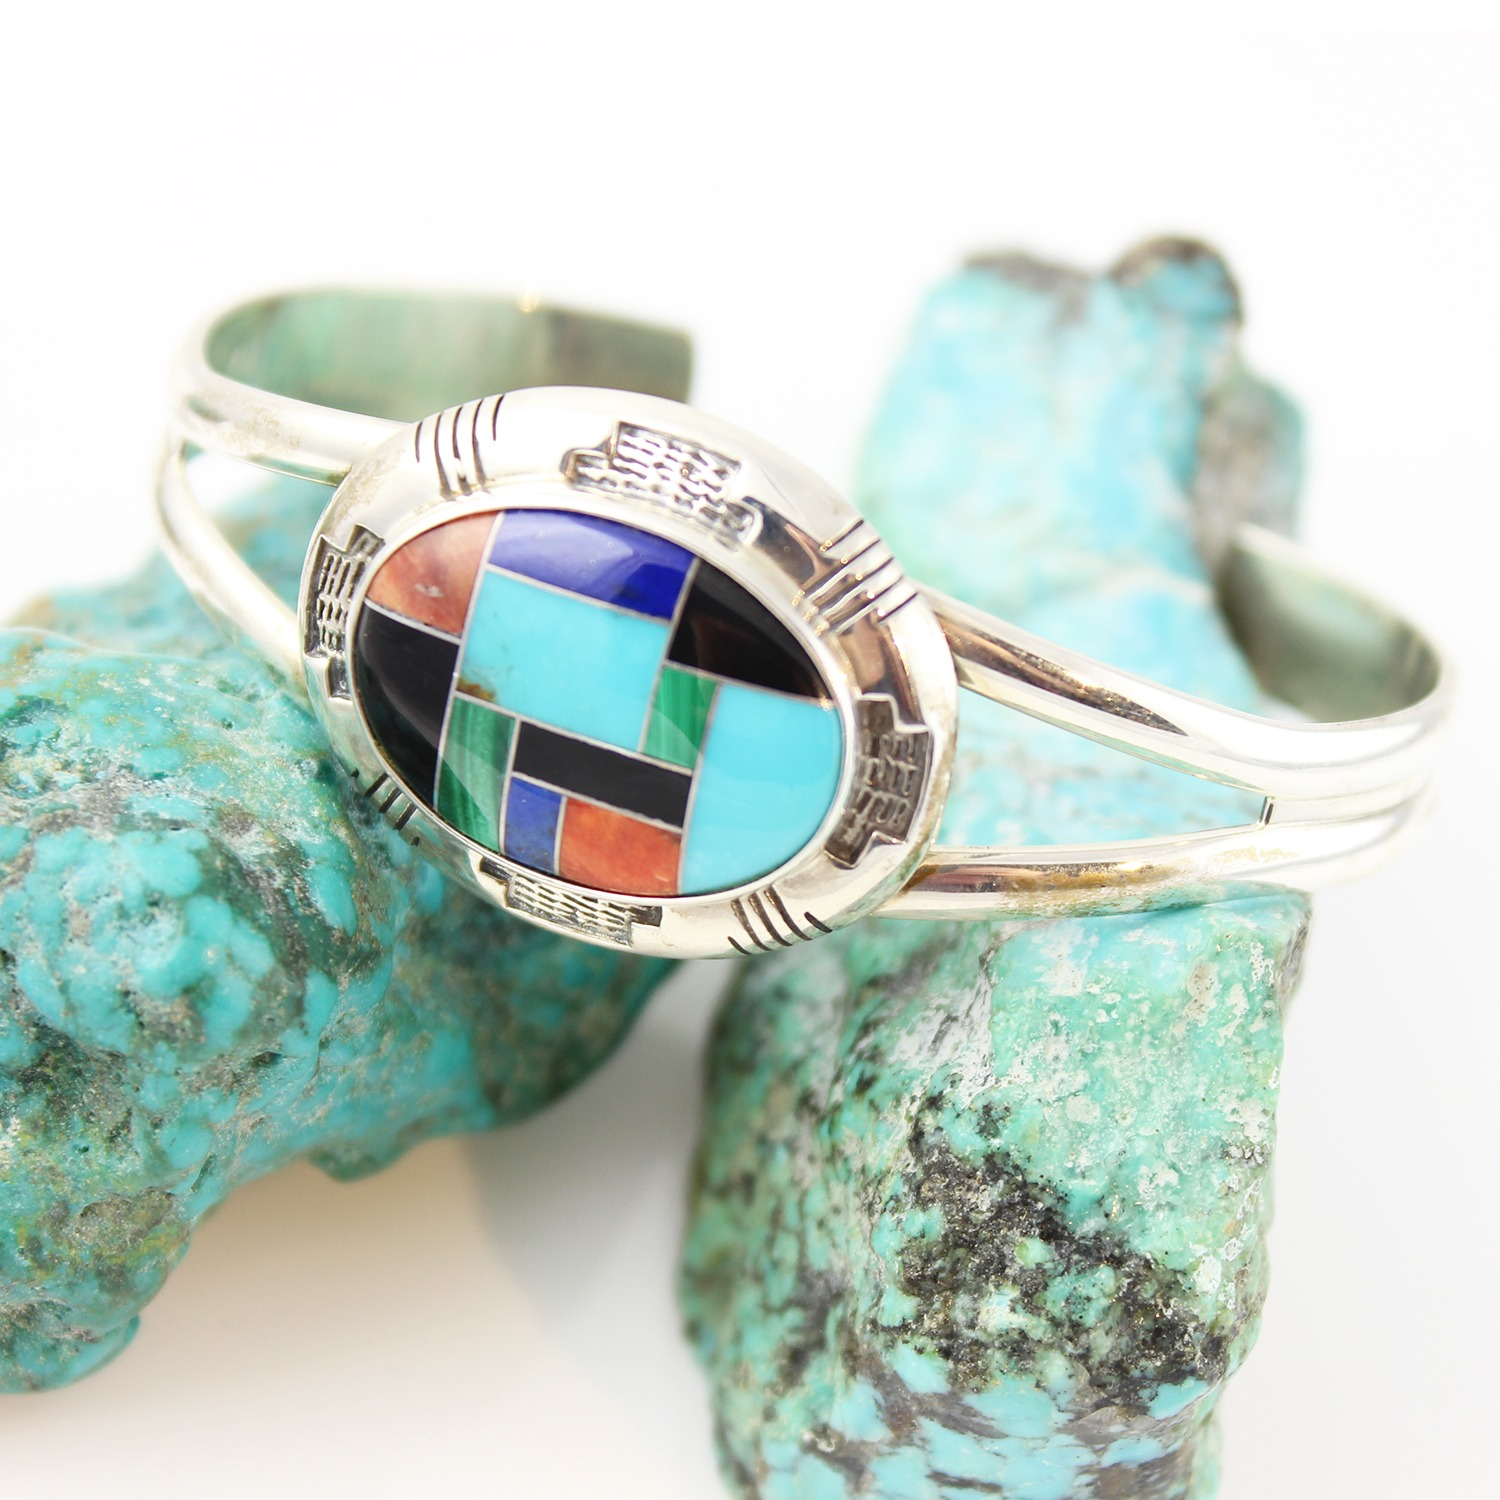 Vintage Carolyn Pollack Relios Sterling Silver Inlaid Turquoise Cuff Bracelet Ebay